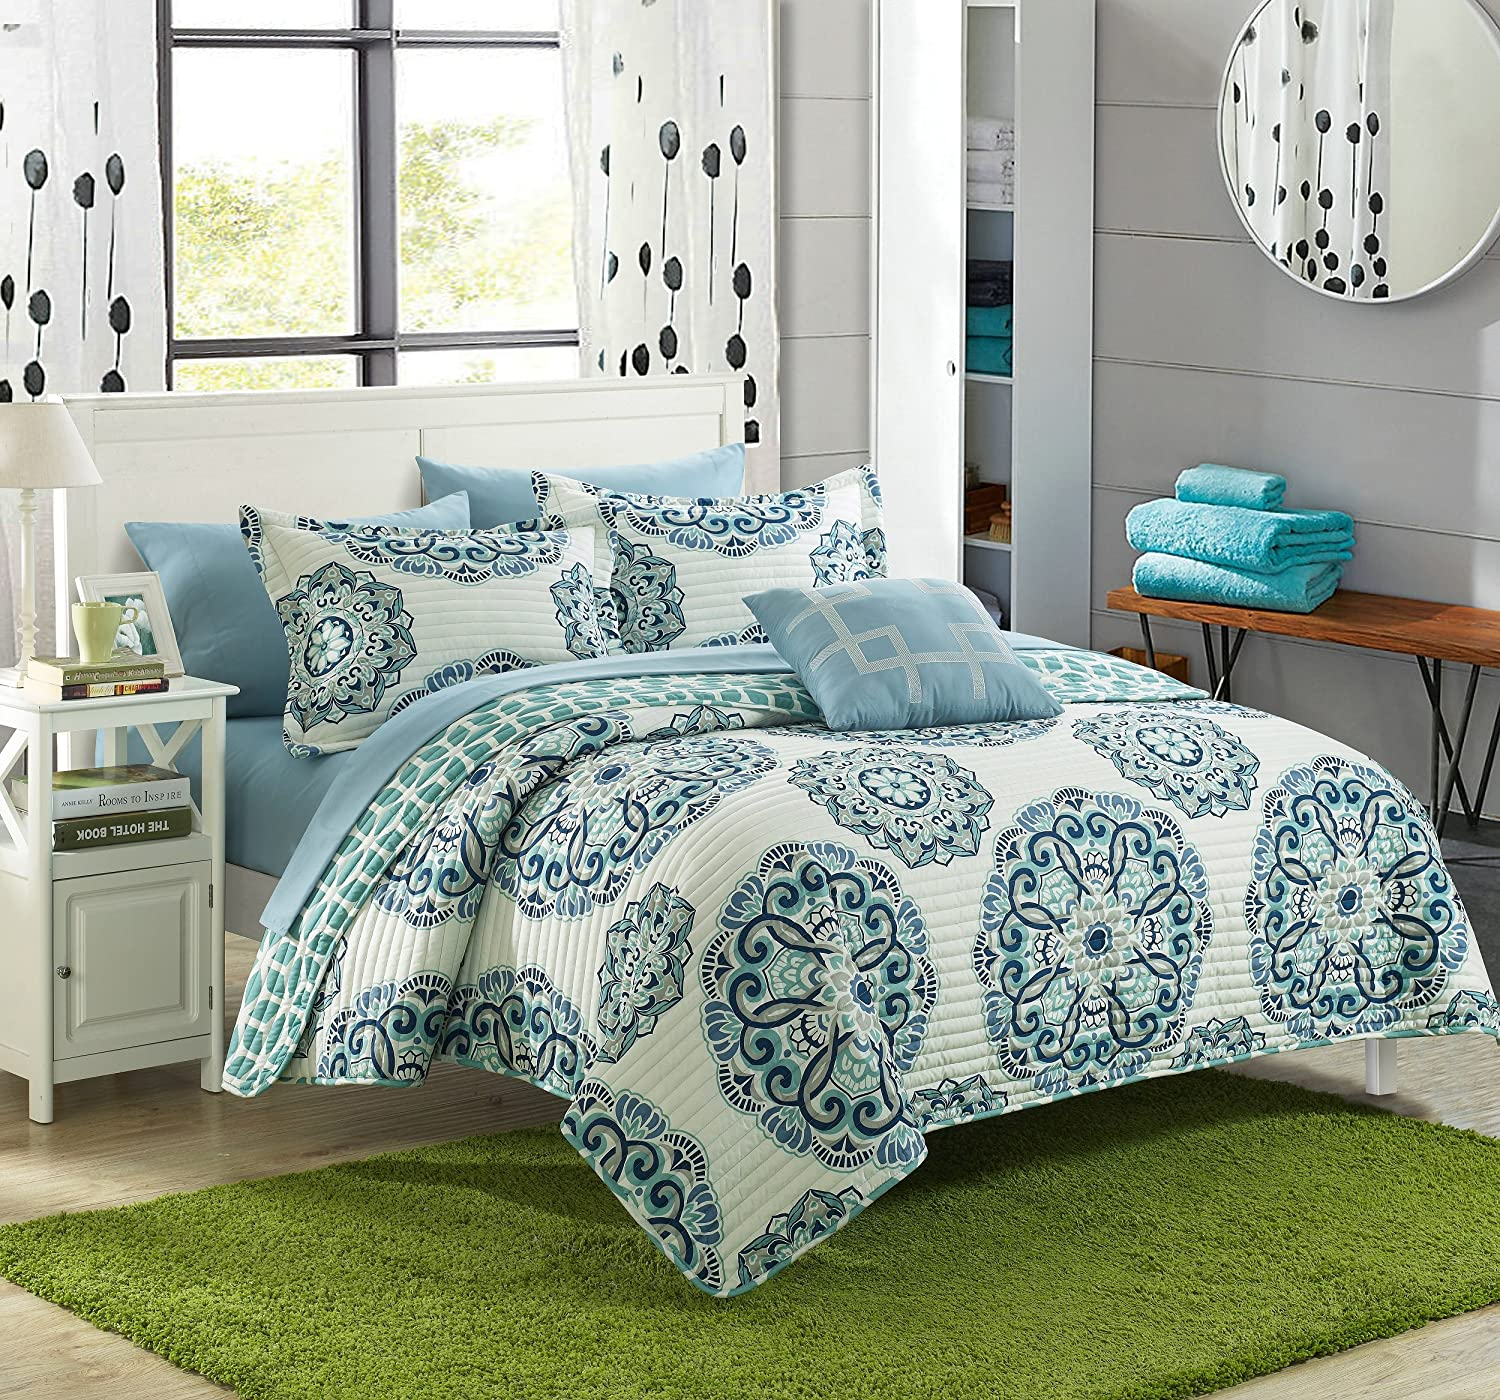 Chic Home Madrid 4 Piece Reversible Quilt Set Super Soft Microfiber Large Printed Medallion Design with Geometric Patterned Backing Bedding, King, Green